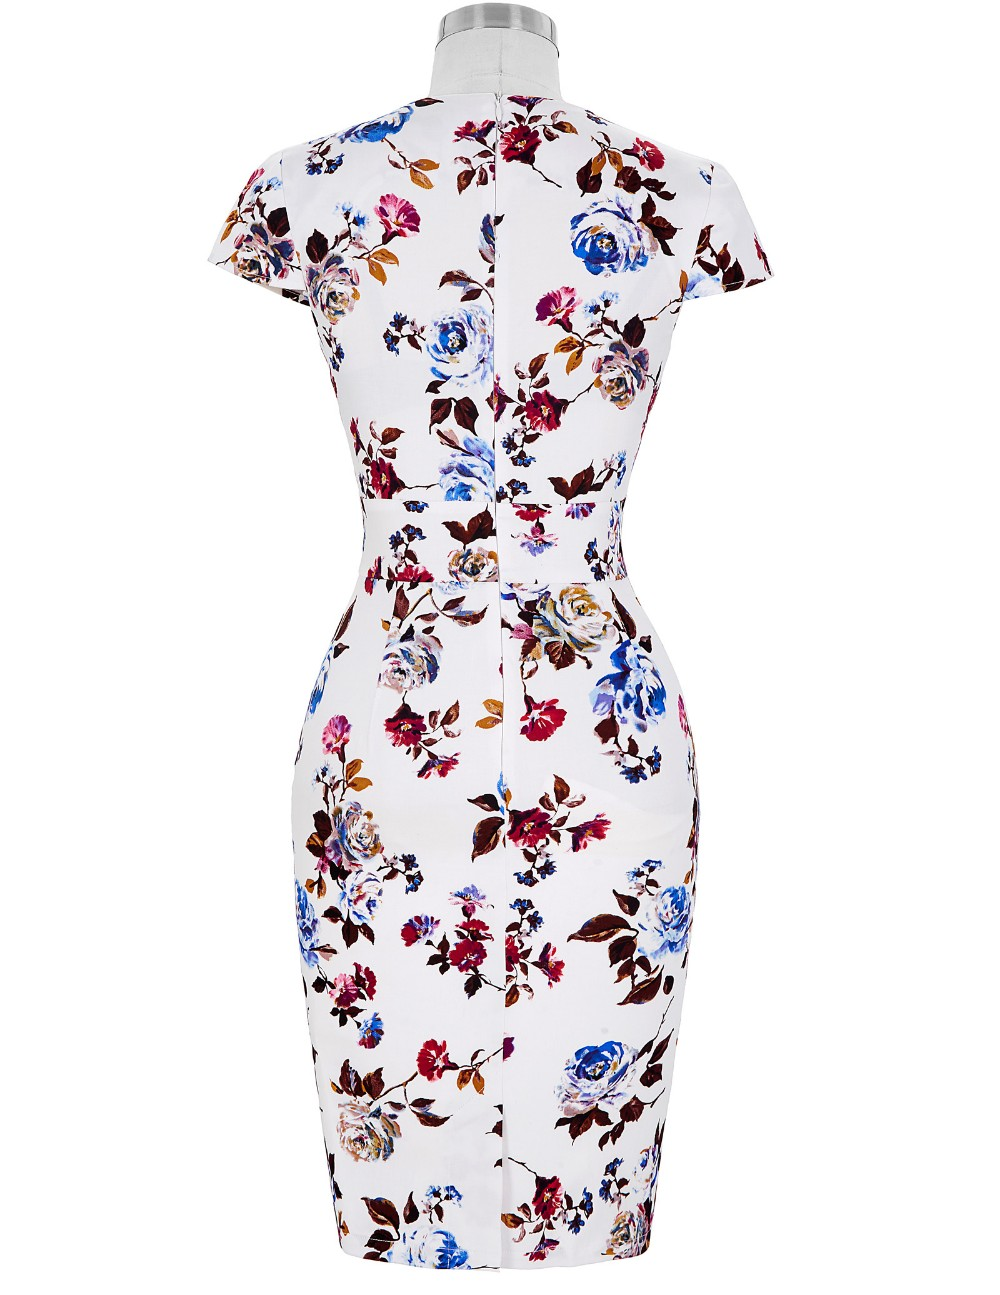 Women Plus Size Pencil Dresses Rockabilly Clothing 2018 Floral Summer Casual Party Office Dress Sexy 50s Vintage Bodycon Dress 22